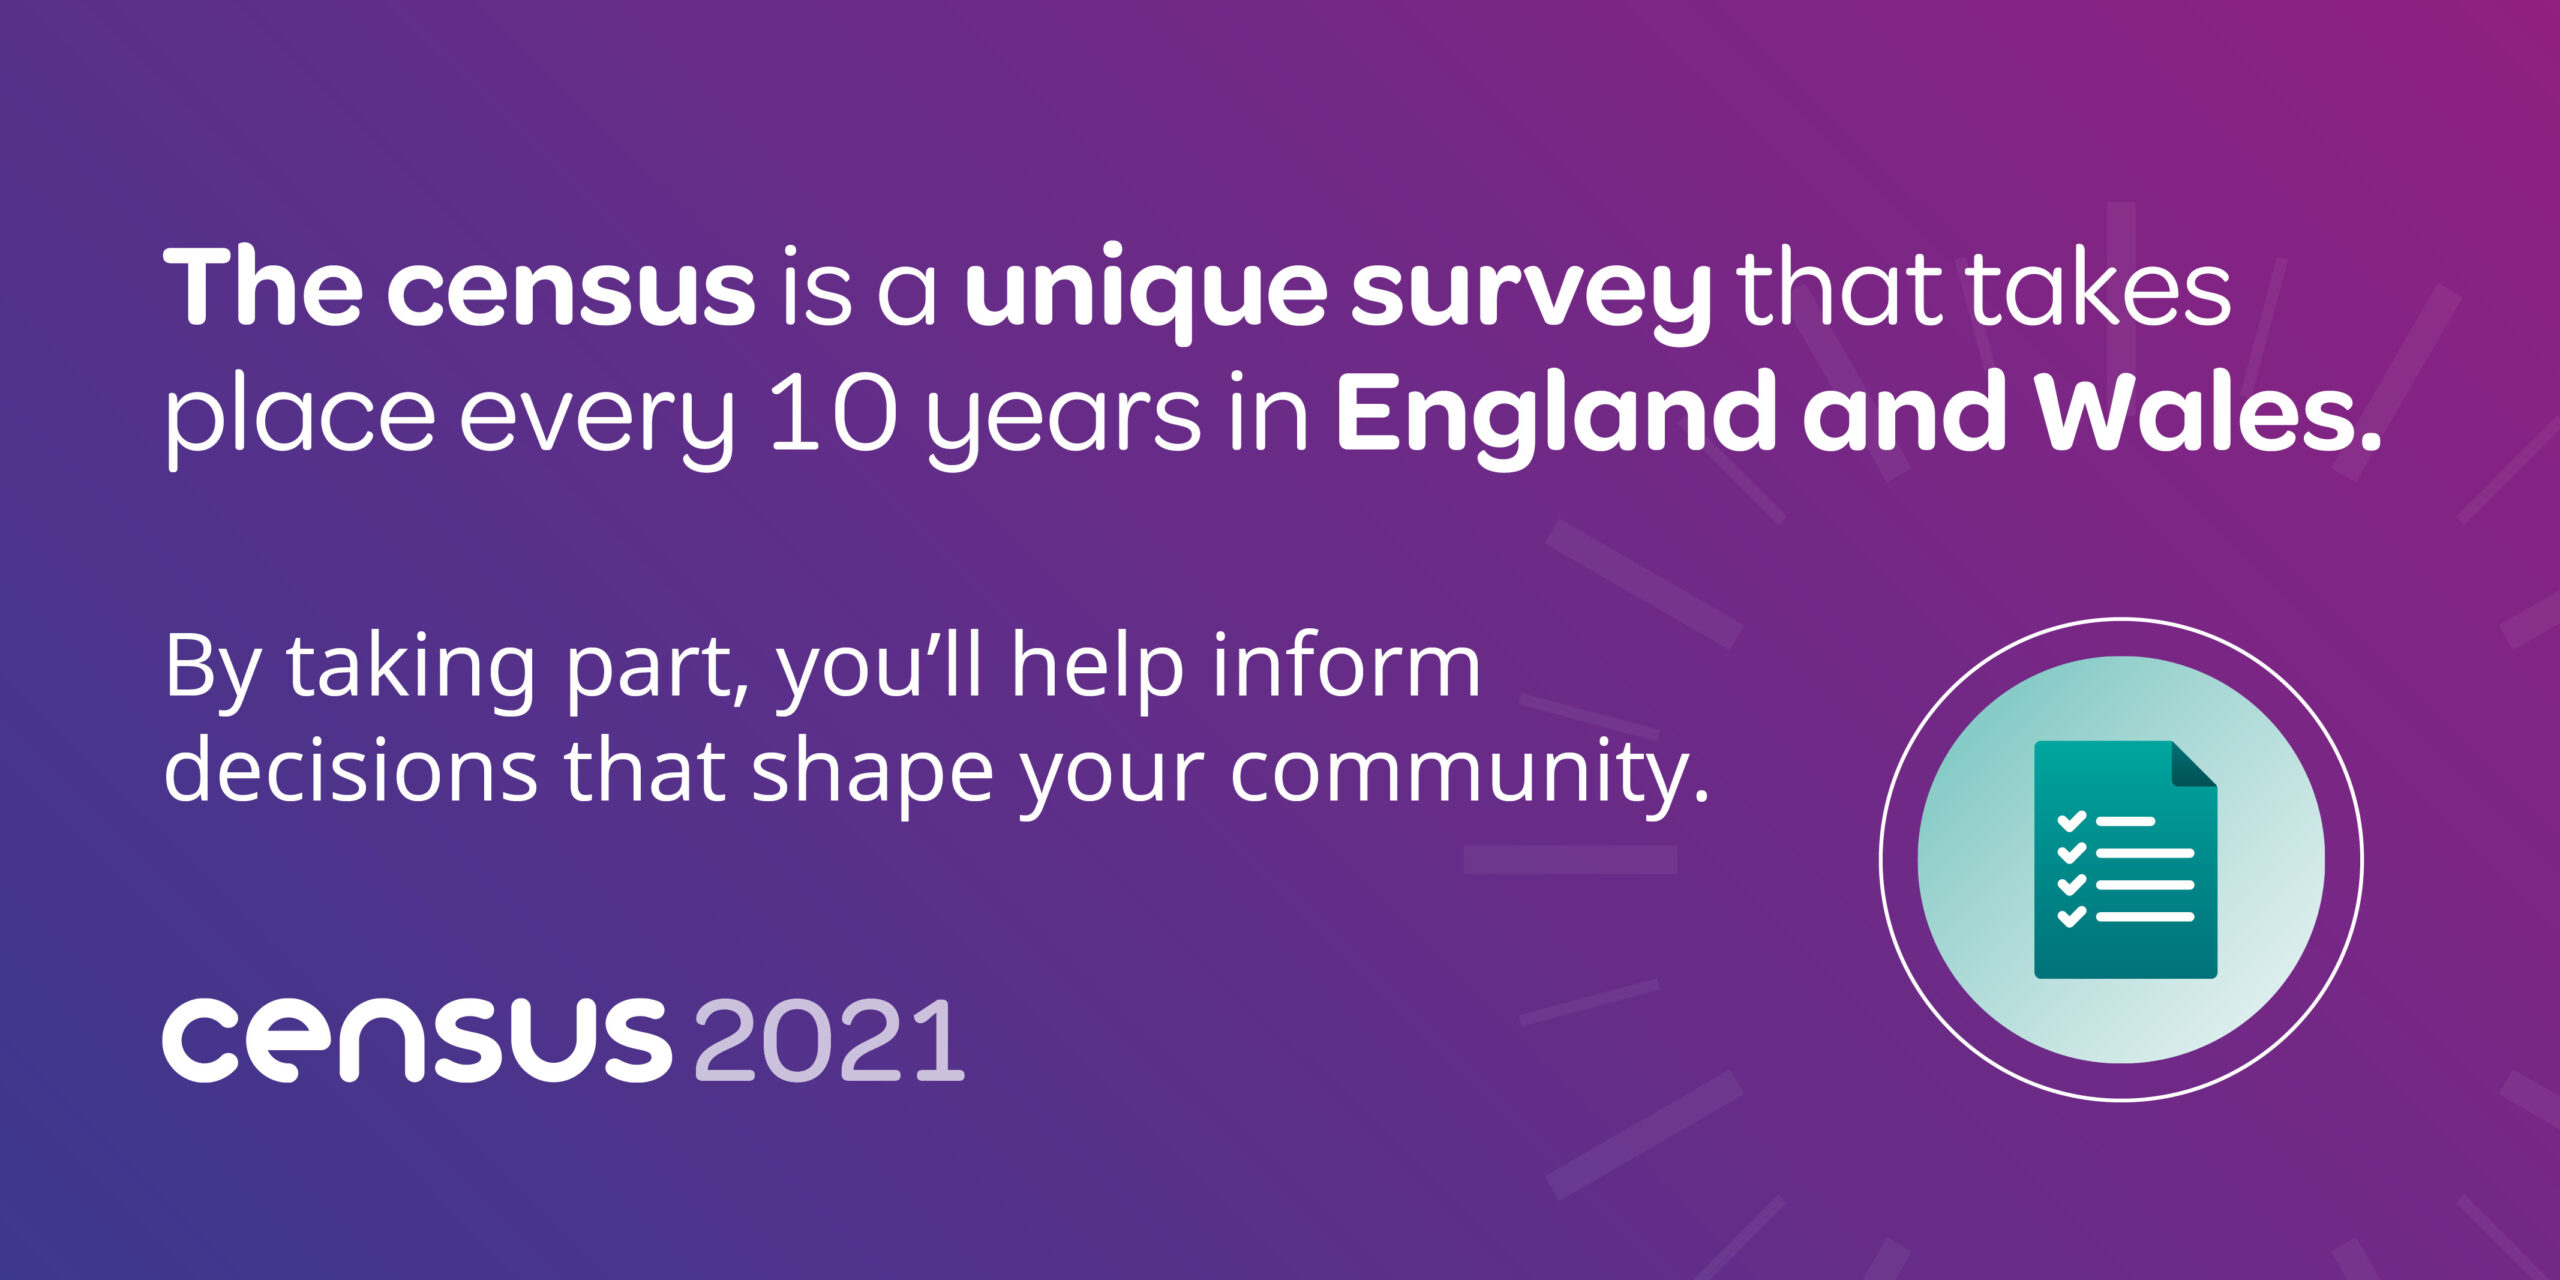 The census is a unique survey that takes place every 10 years in England and Wales. By taking part, you'll help inform decisions that shape your community. census 2021